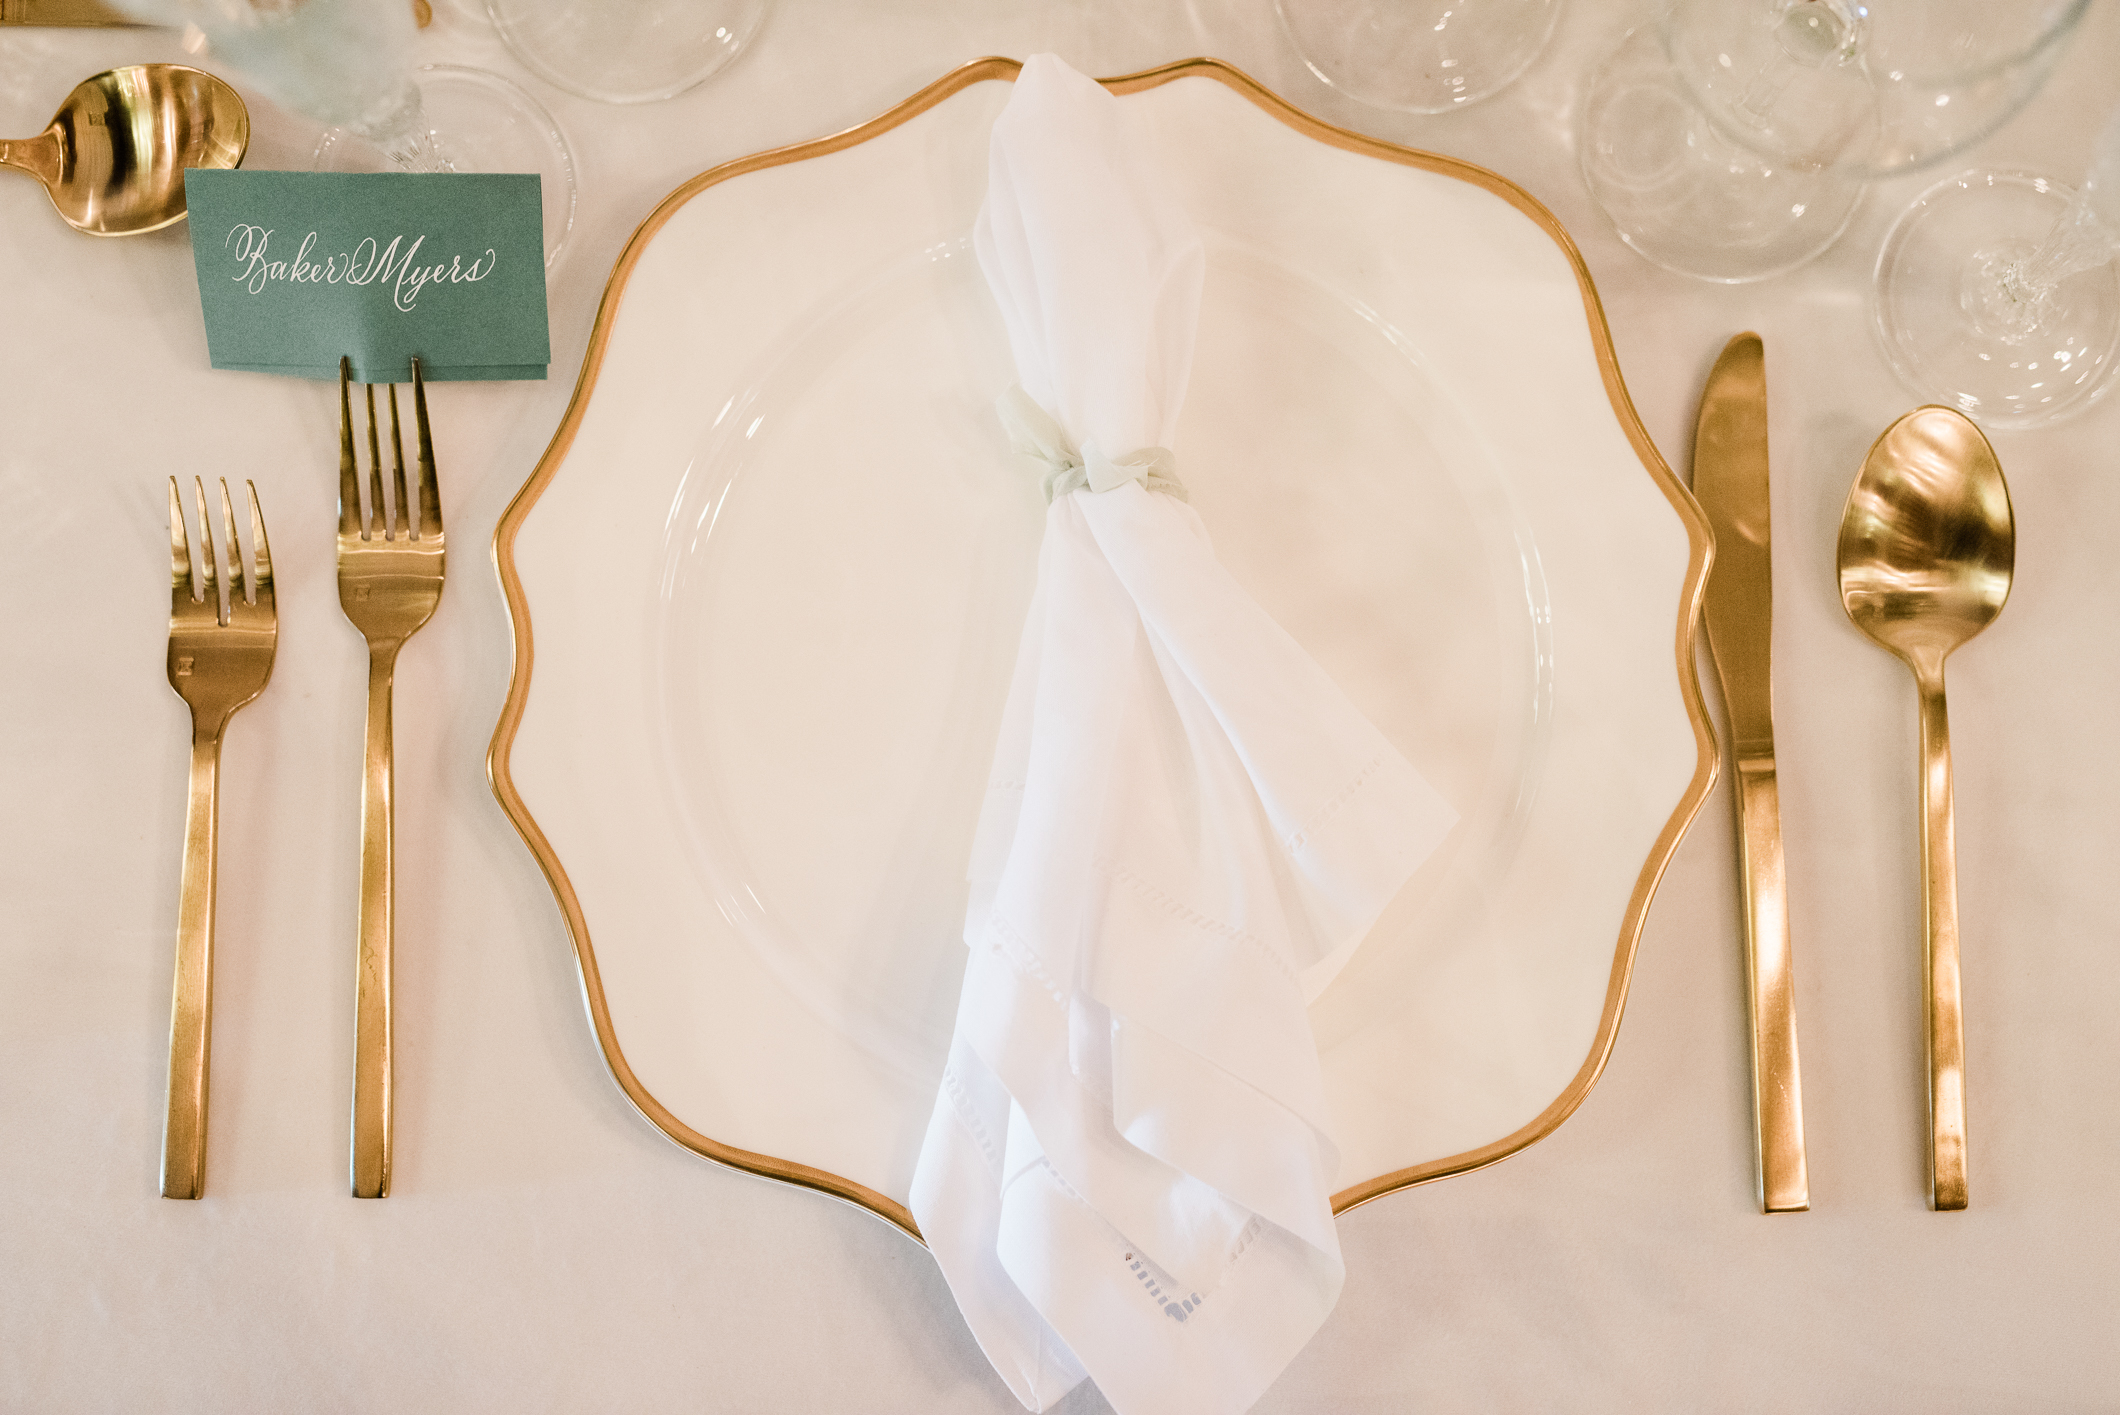 Gold and White Wedding Placesetting with Placecard.jpg